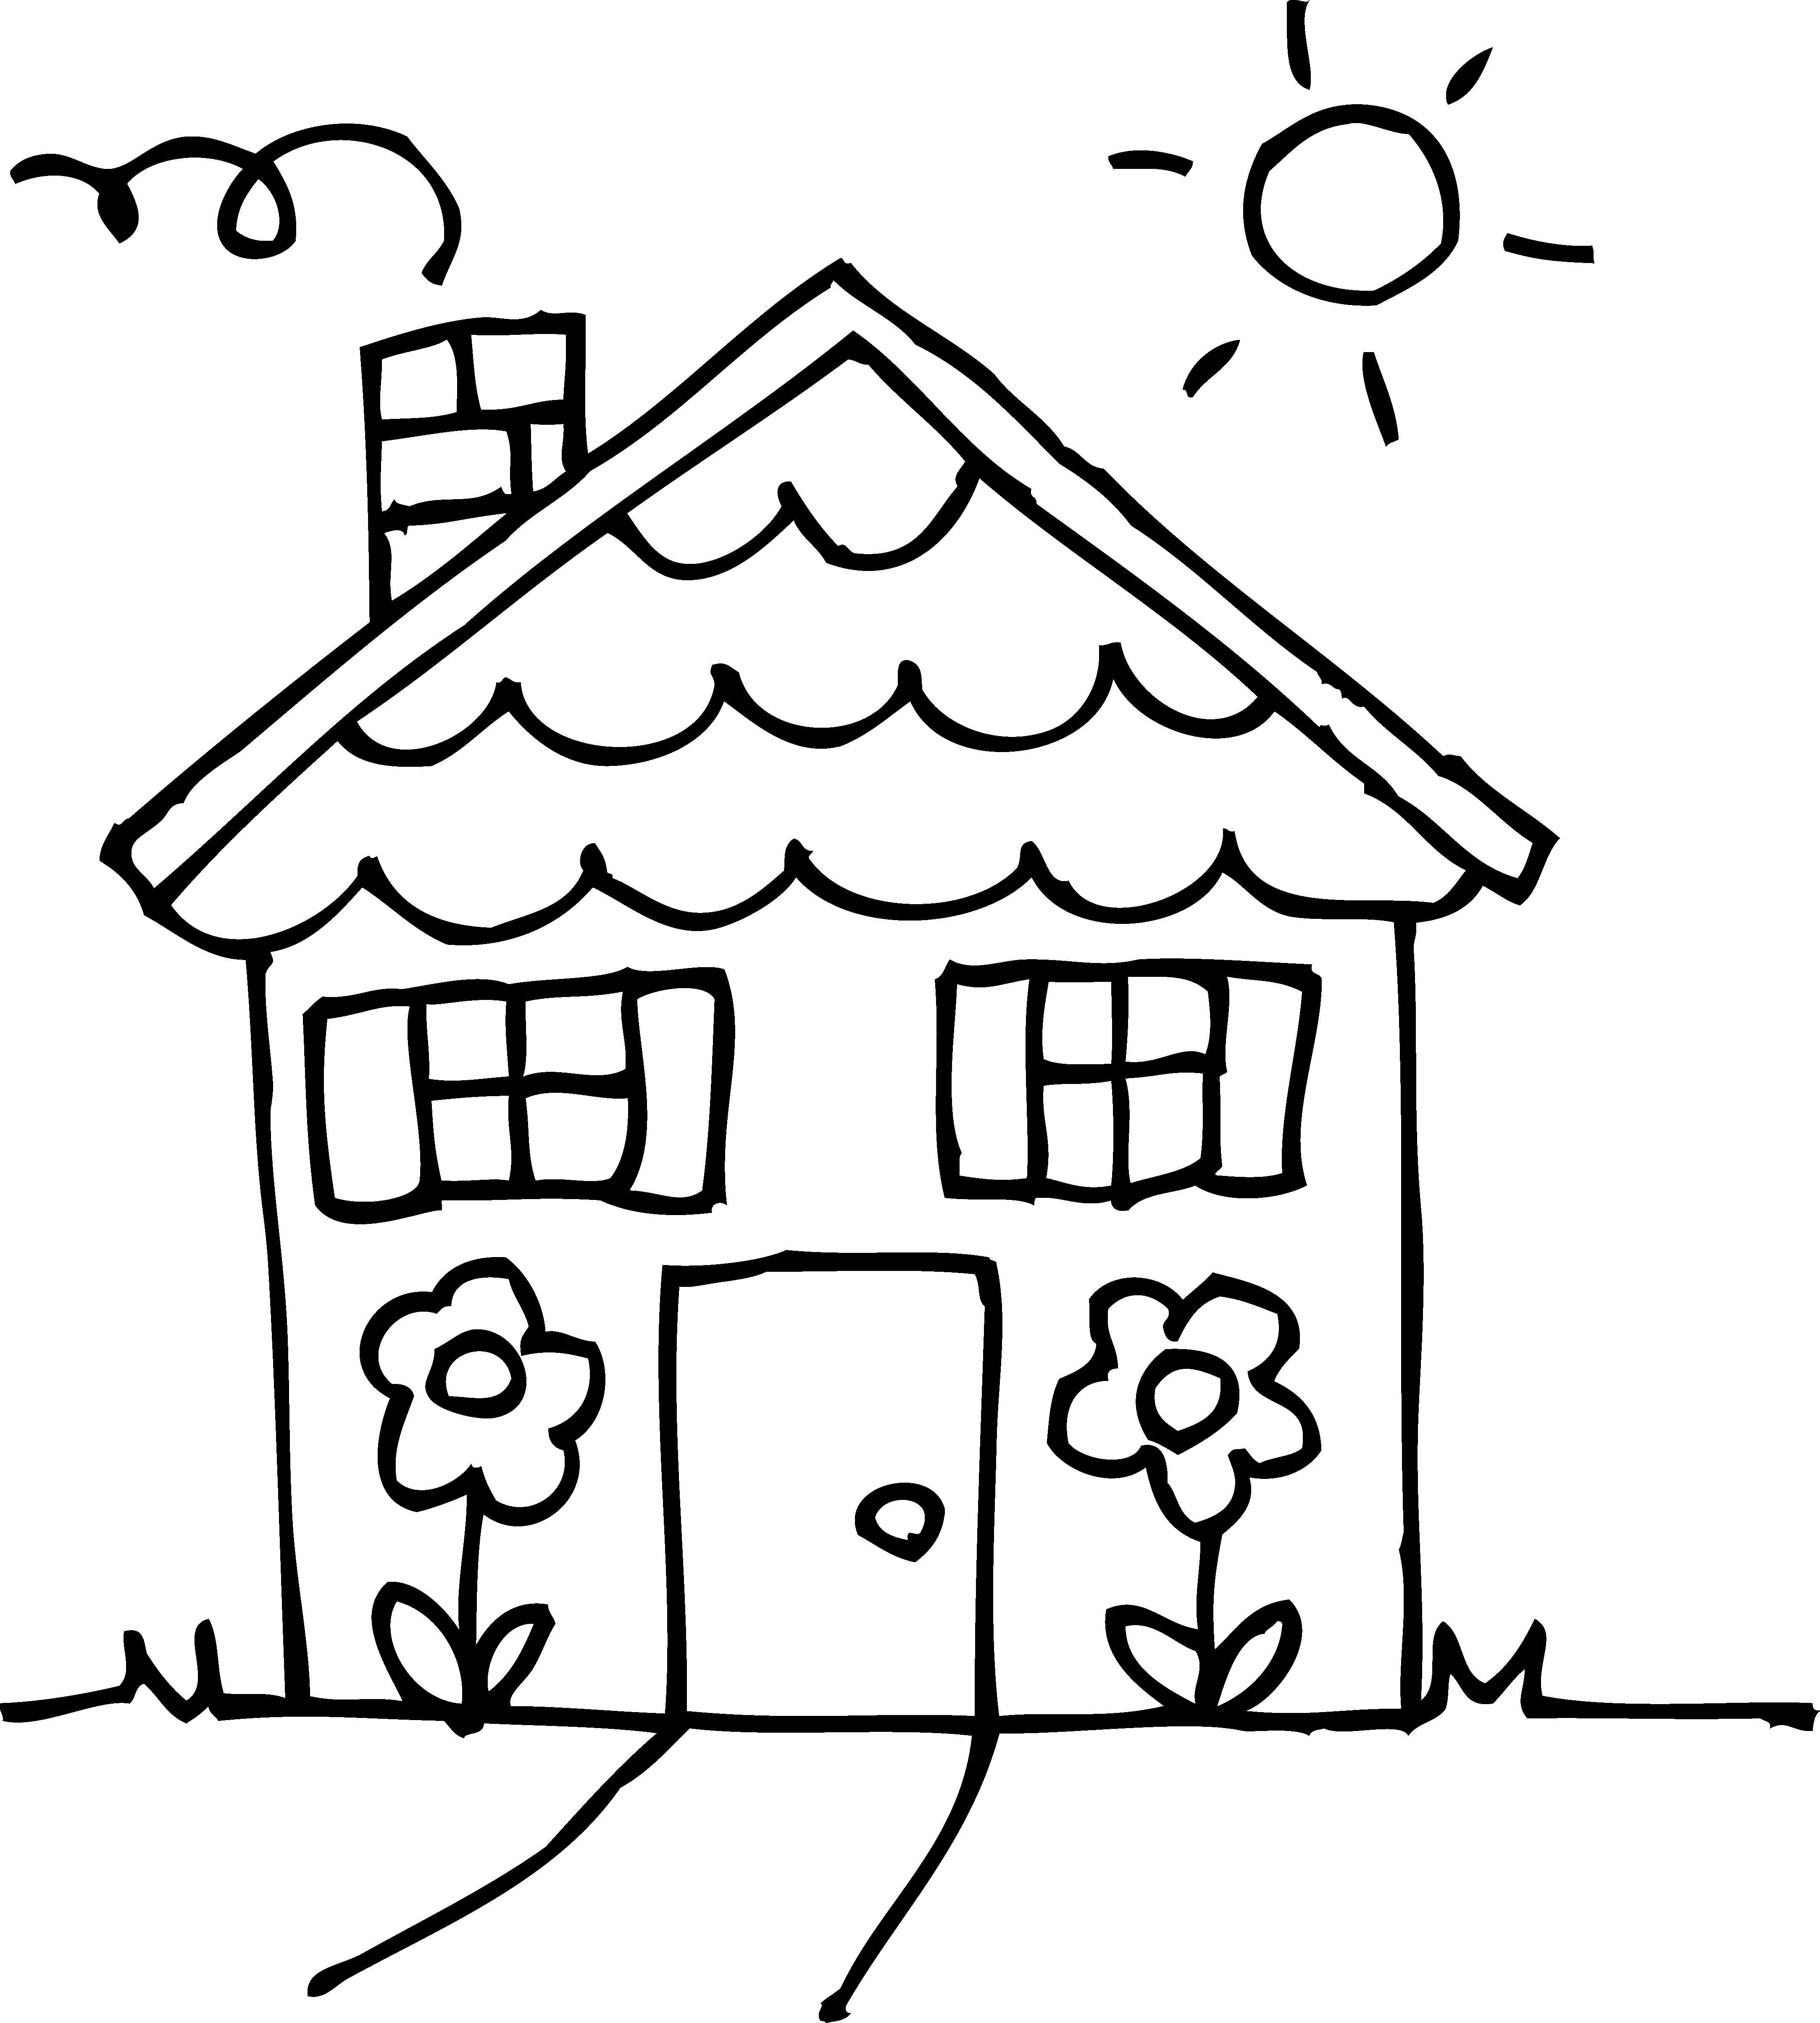 House Black And White House Clipart Black And White Clip